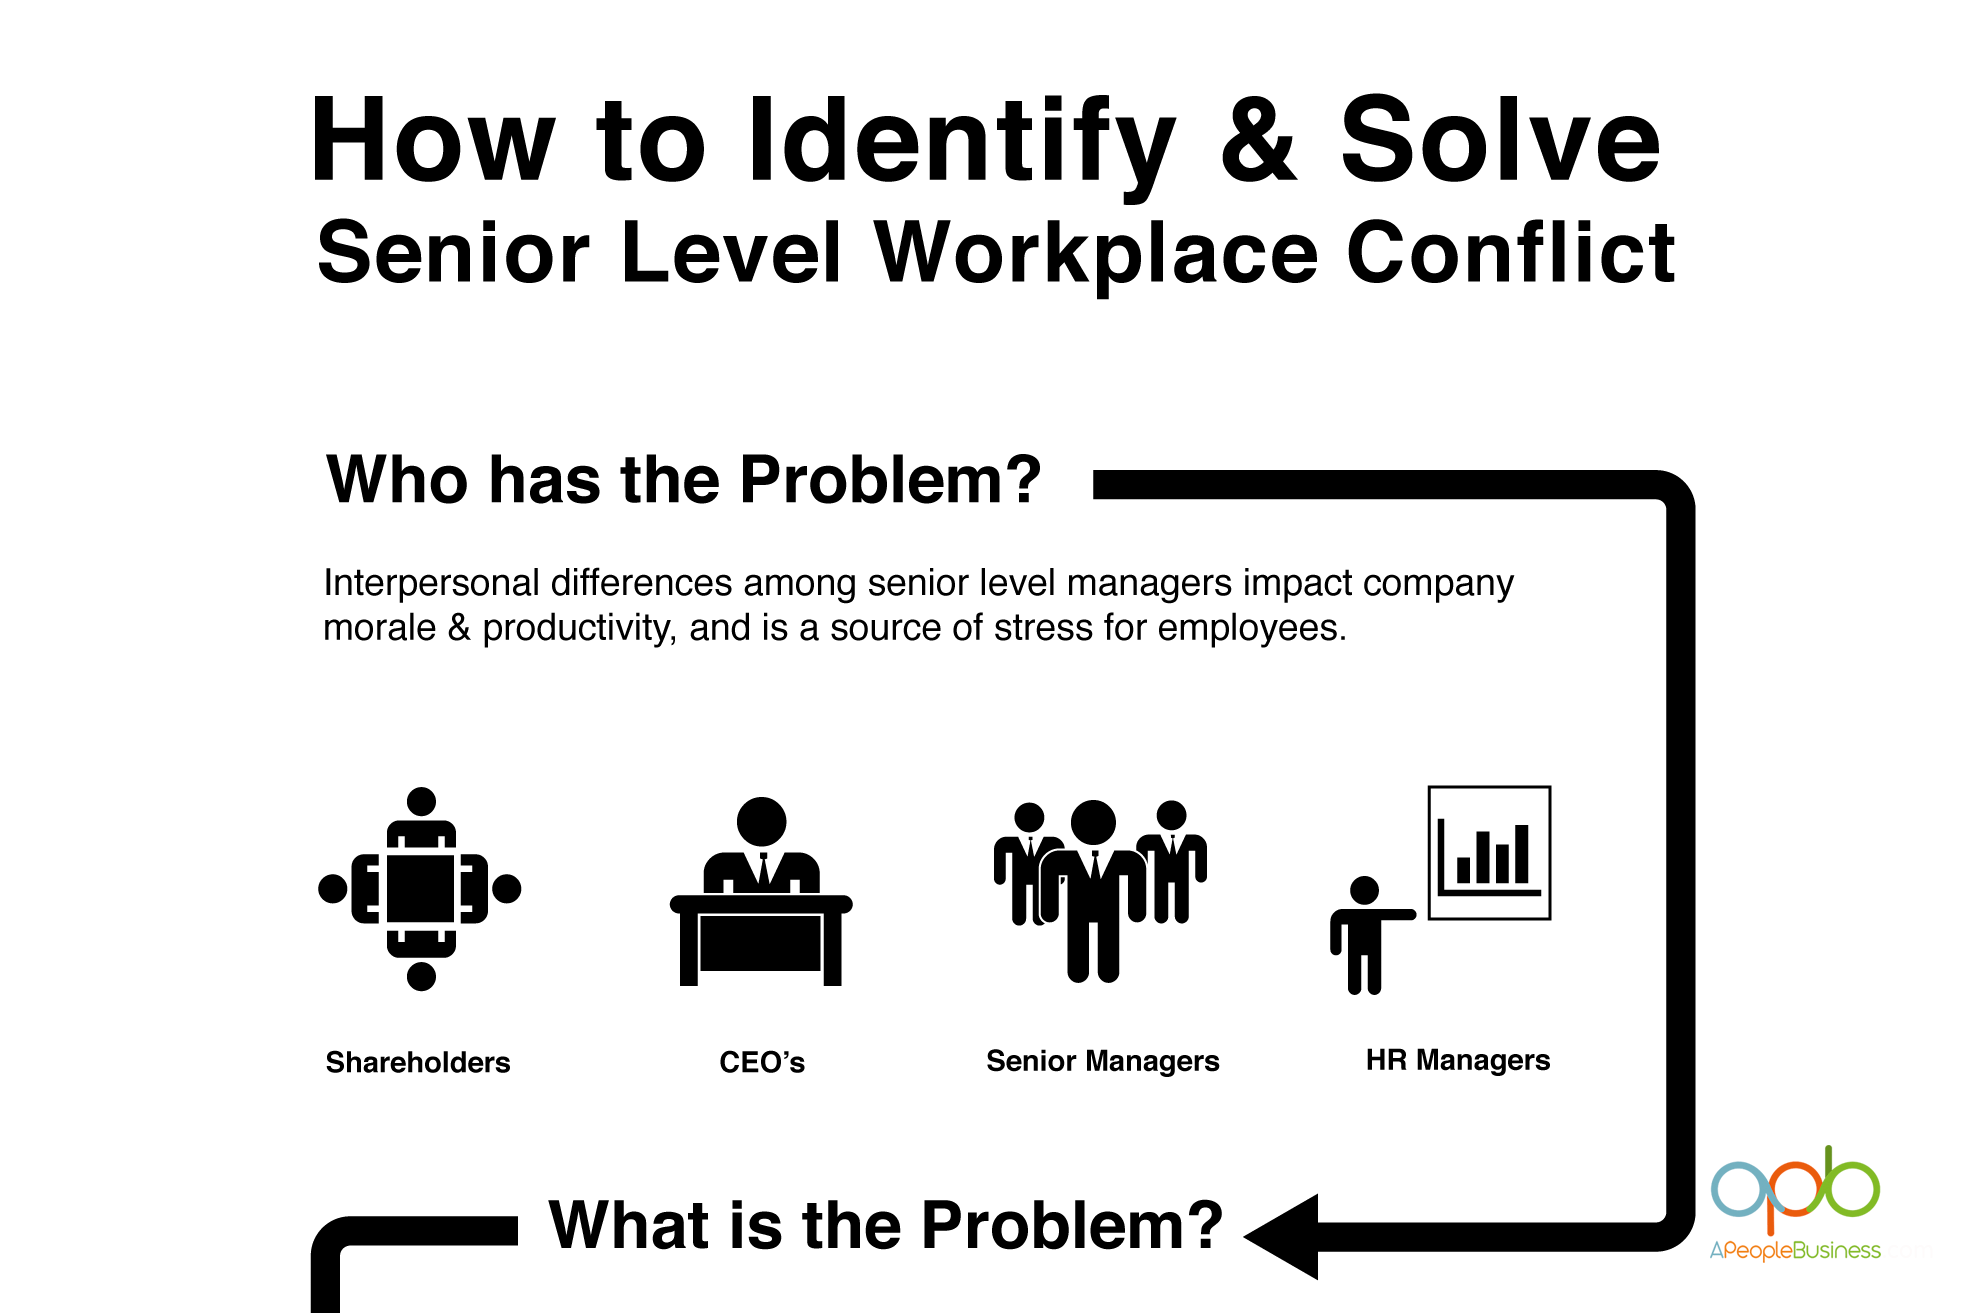 How to Identify and Solve Senior Management Workplace Conflict